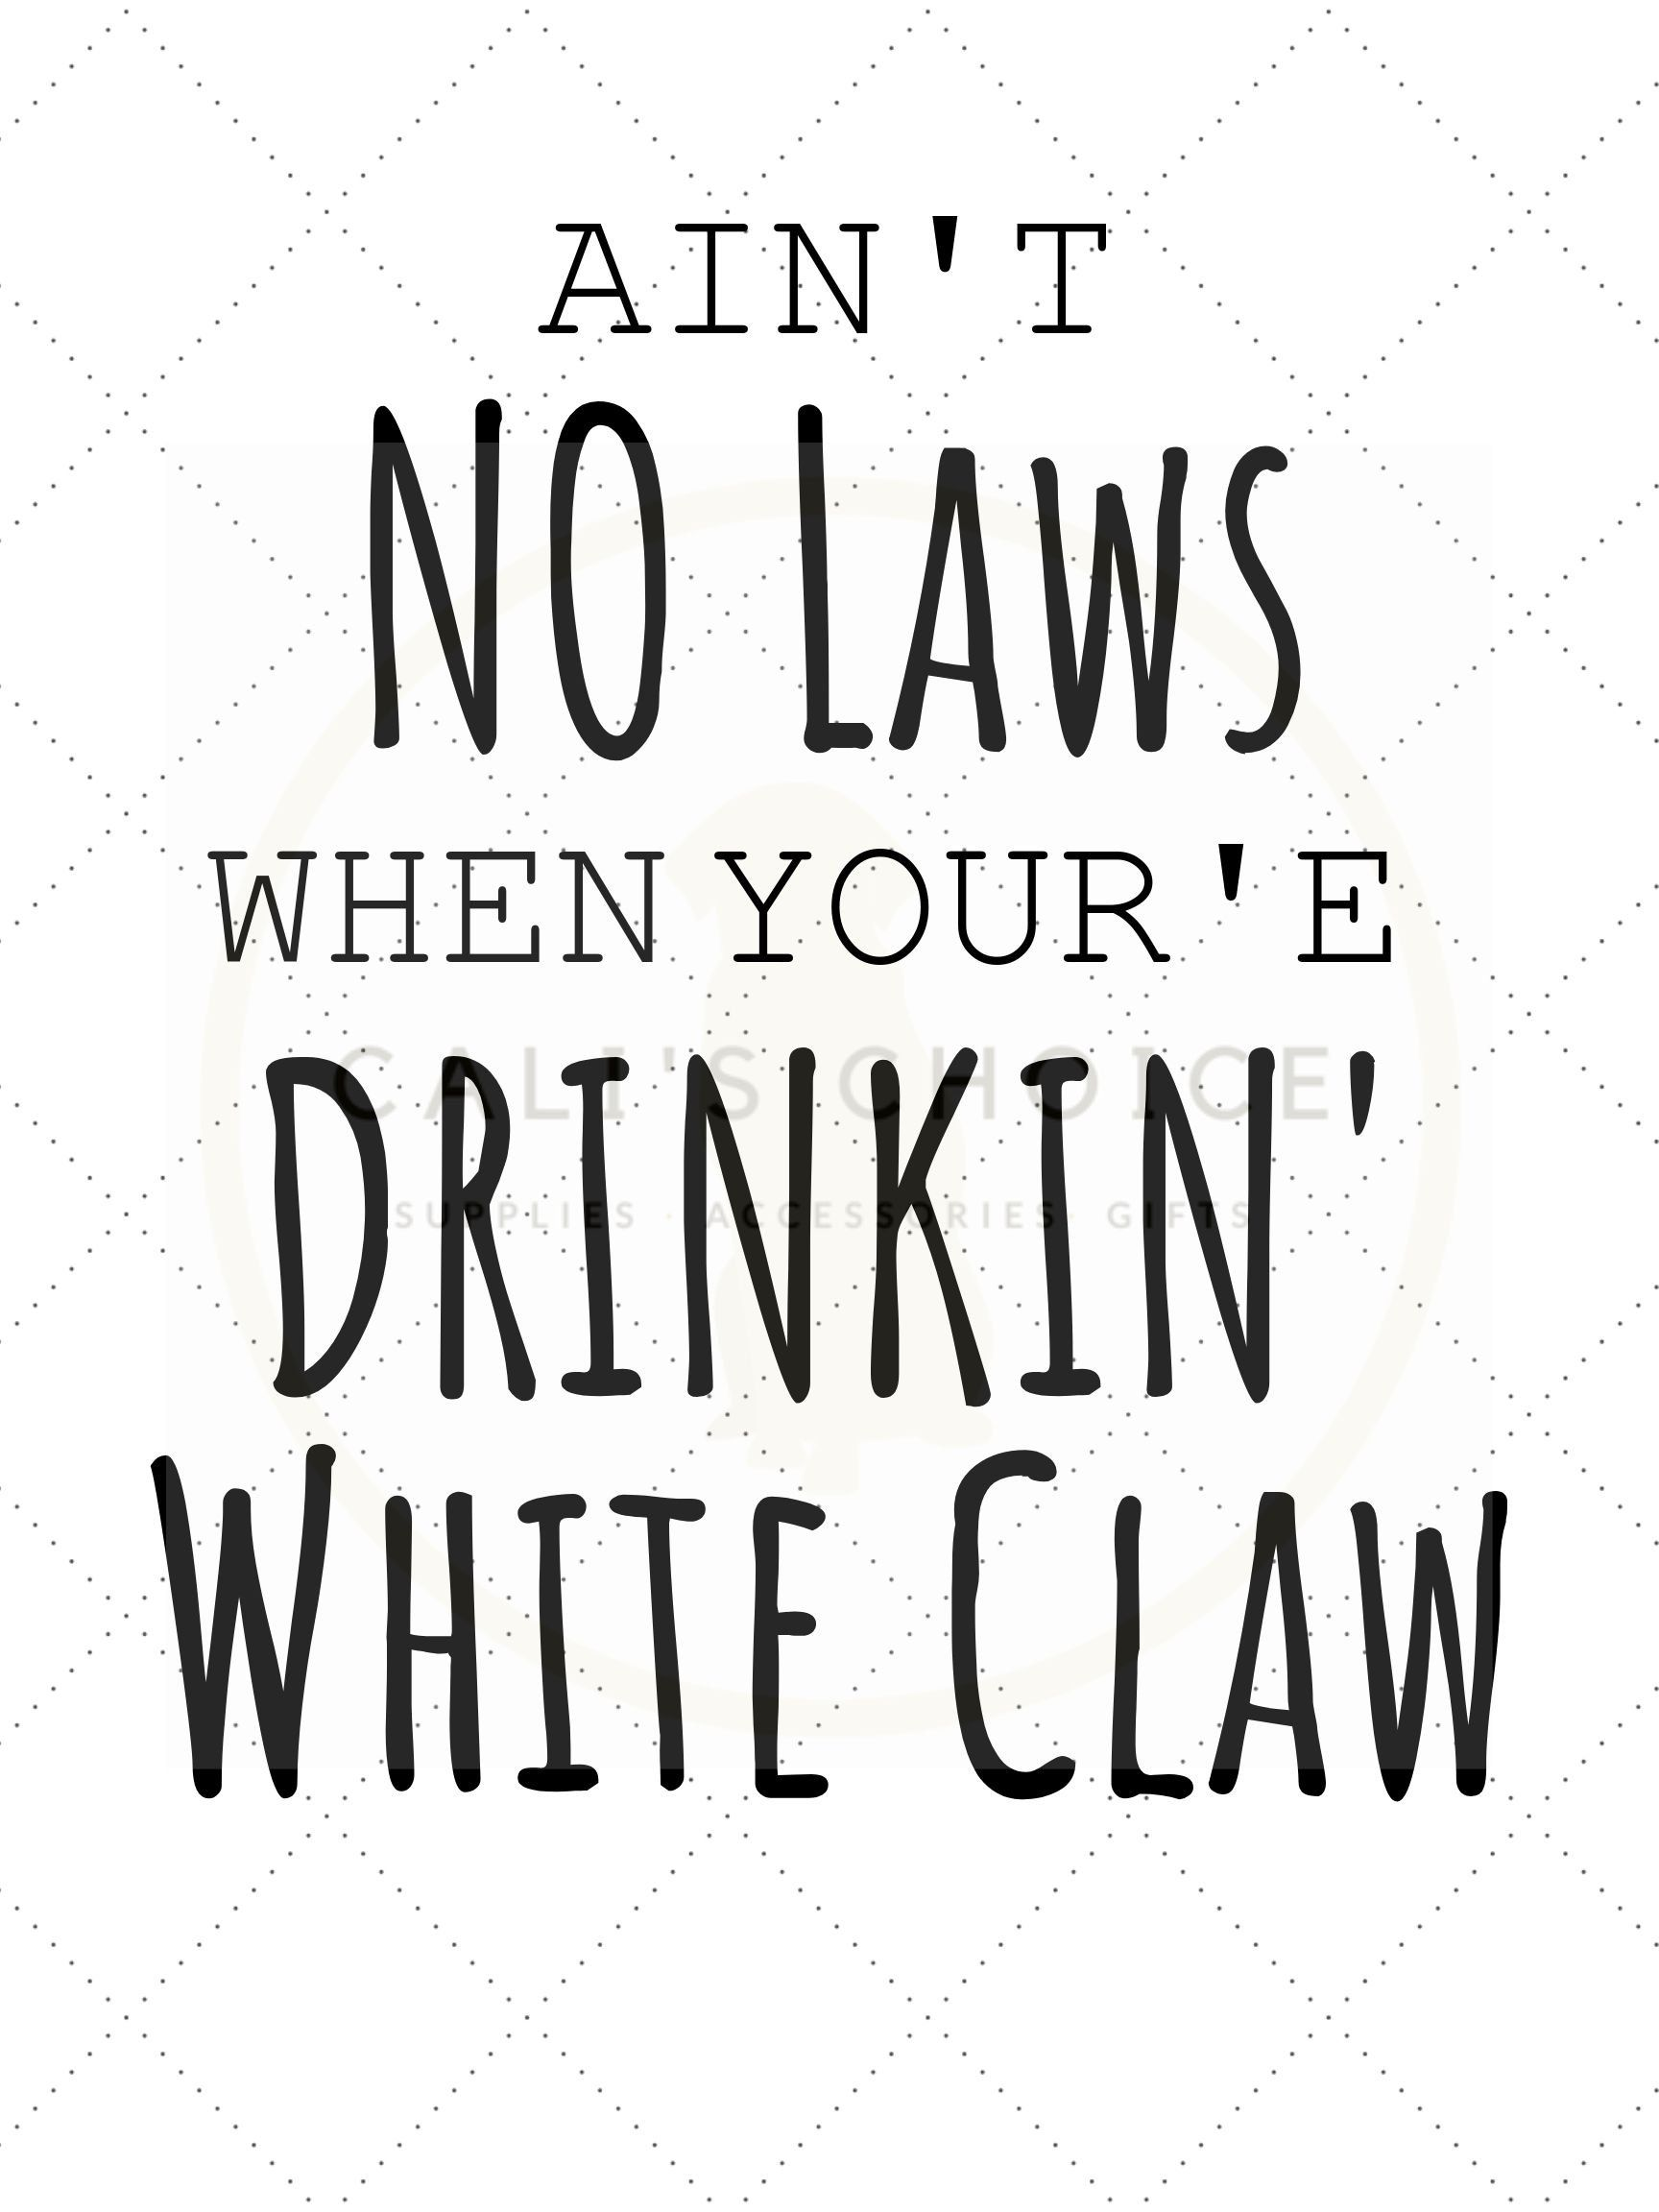 Ain't No Laws When Drinkin' White Claws_Decal_File_SVG_JPG